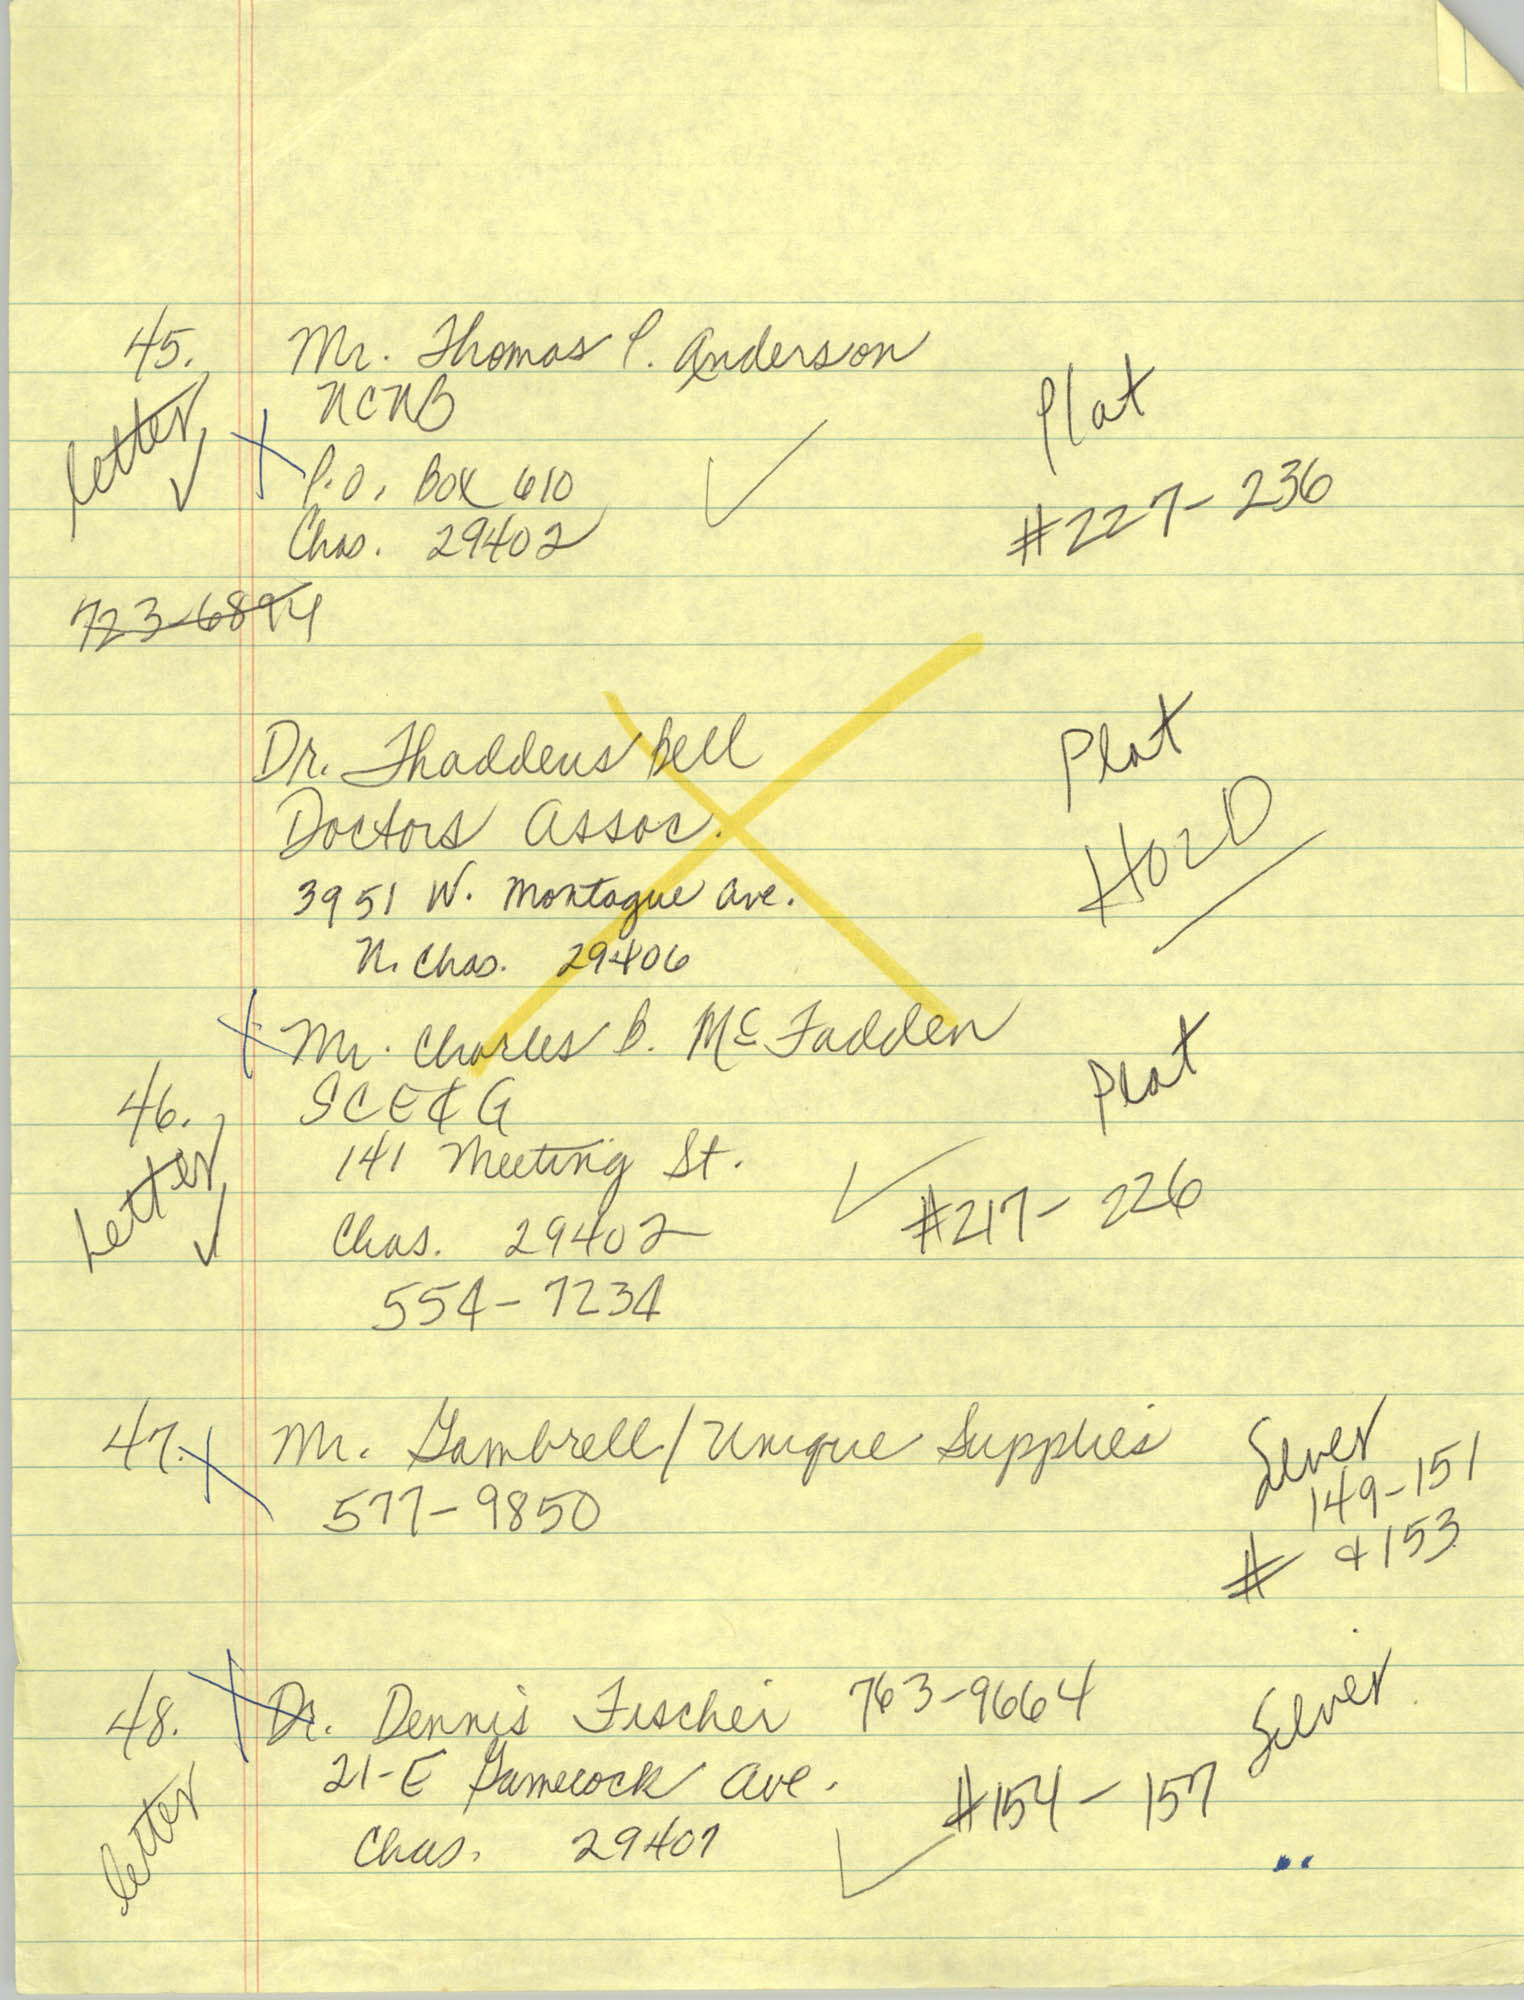 Handwritten Addresses for Tickets, Page 15